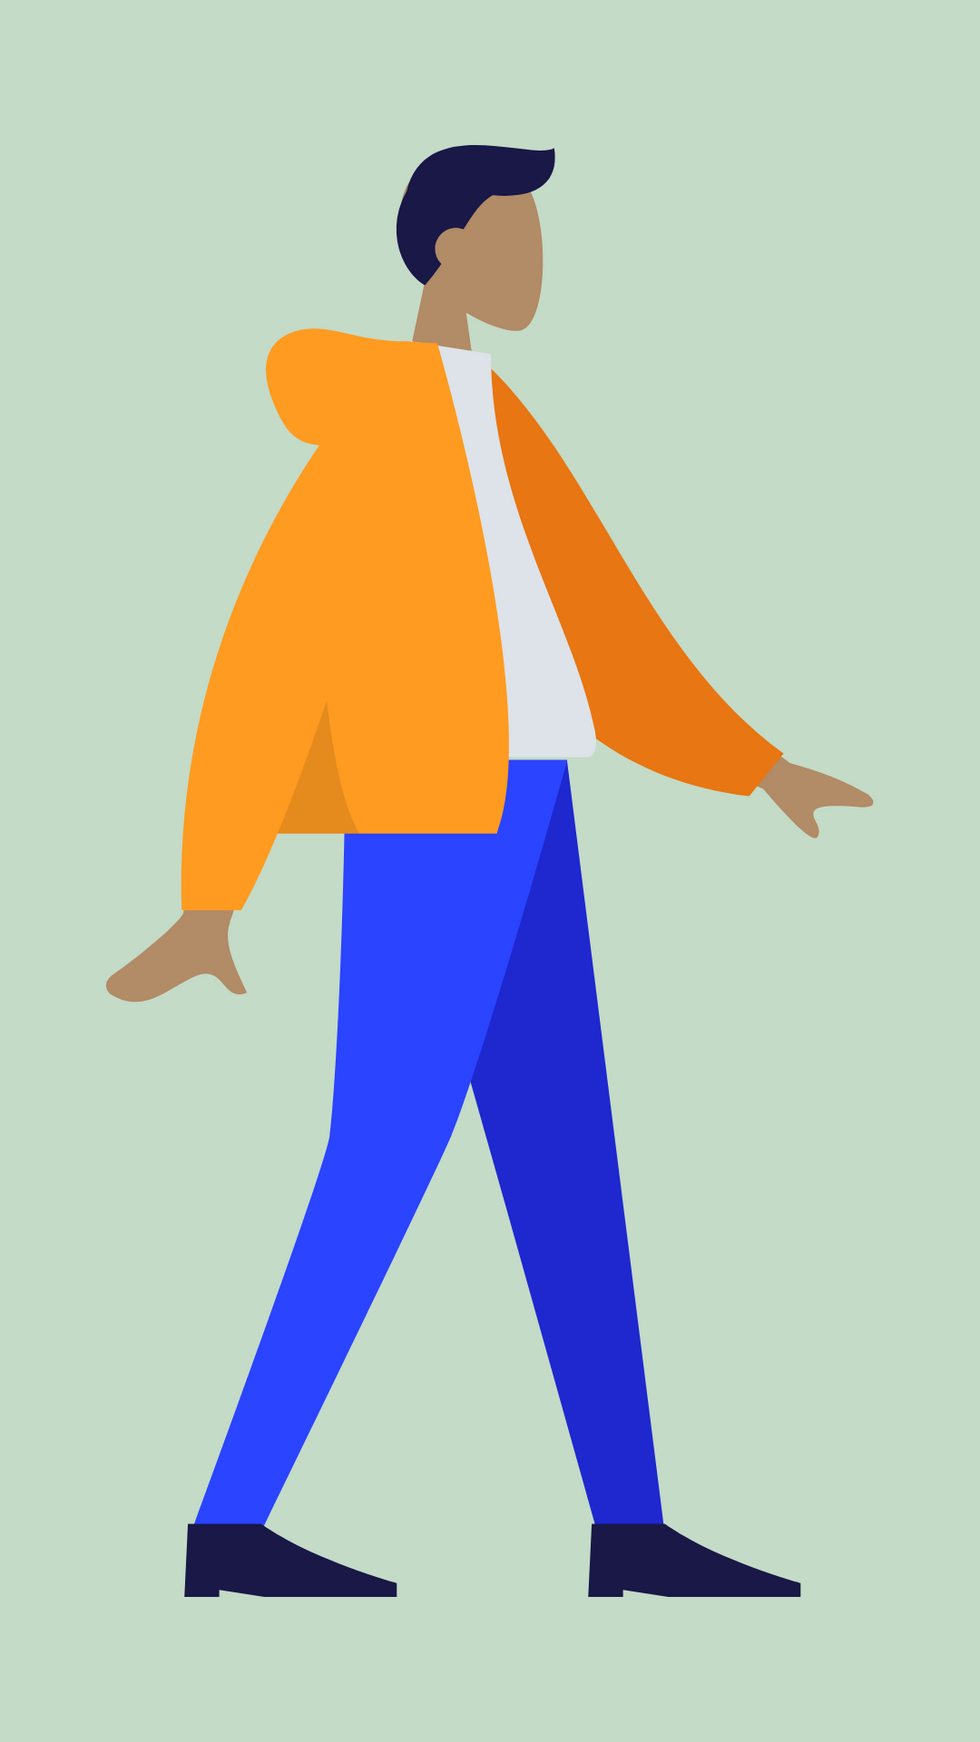 A self-portrait designed in the Humaaans engine.